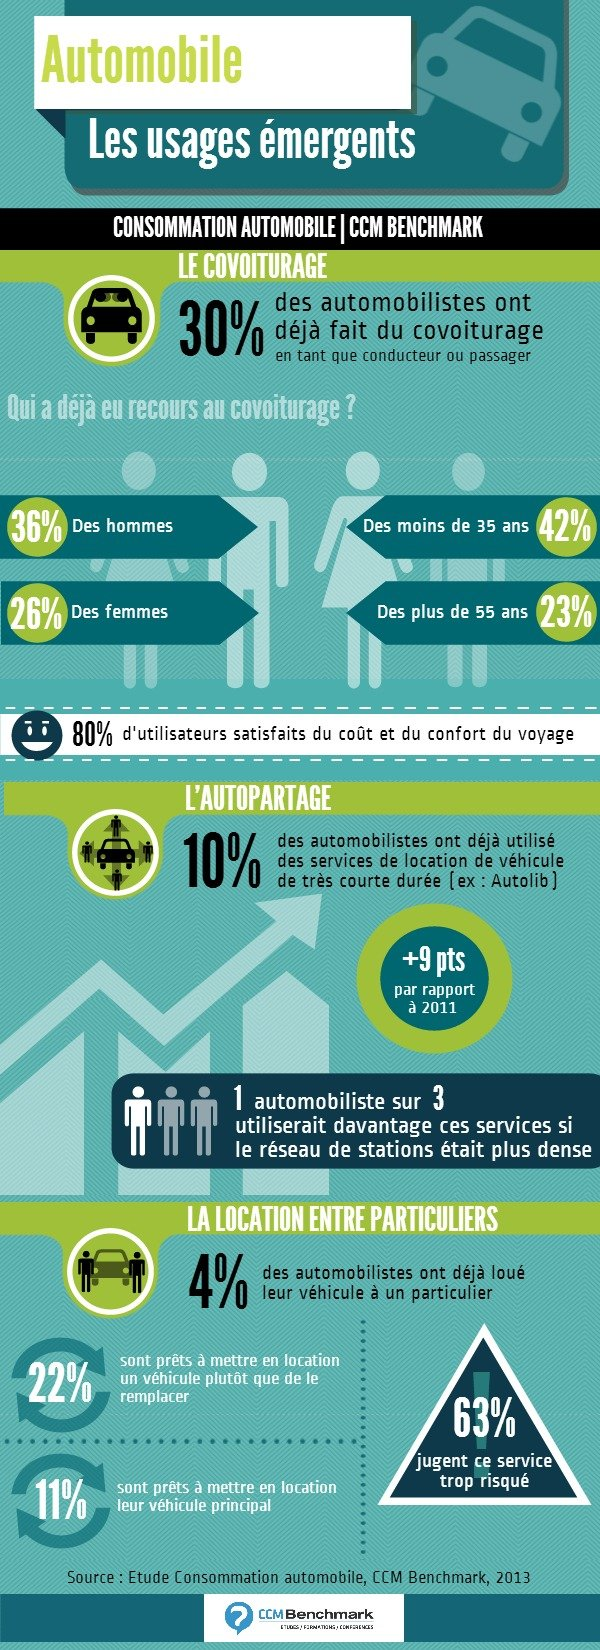 infographie-les-usages-emergents-de-l-automobile